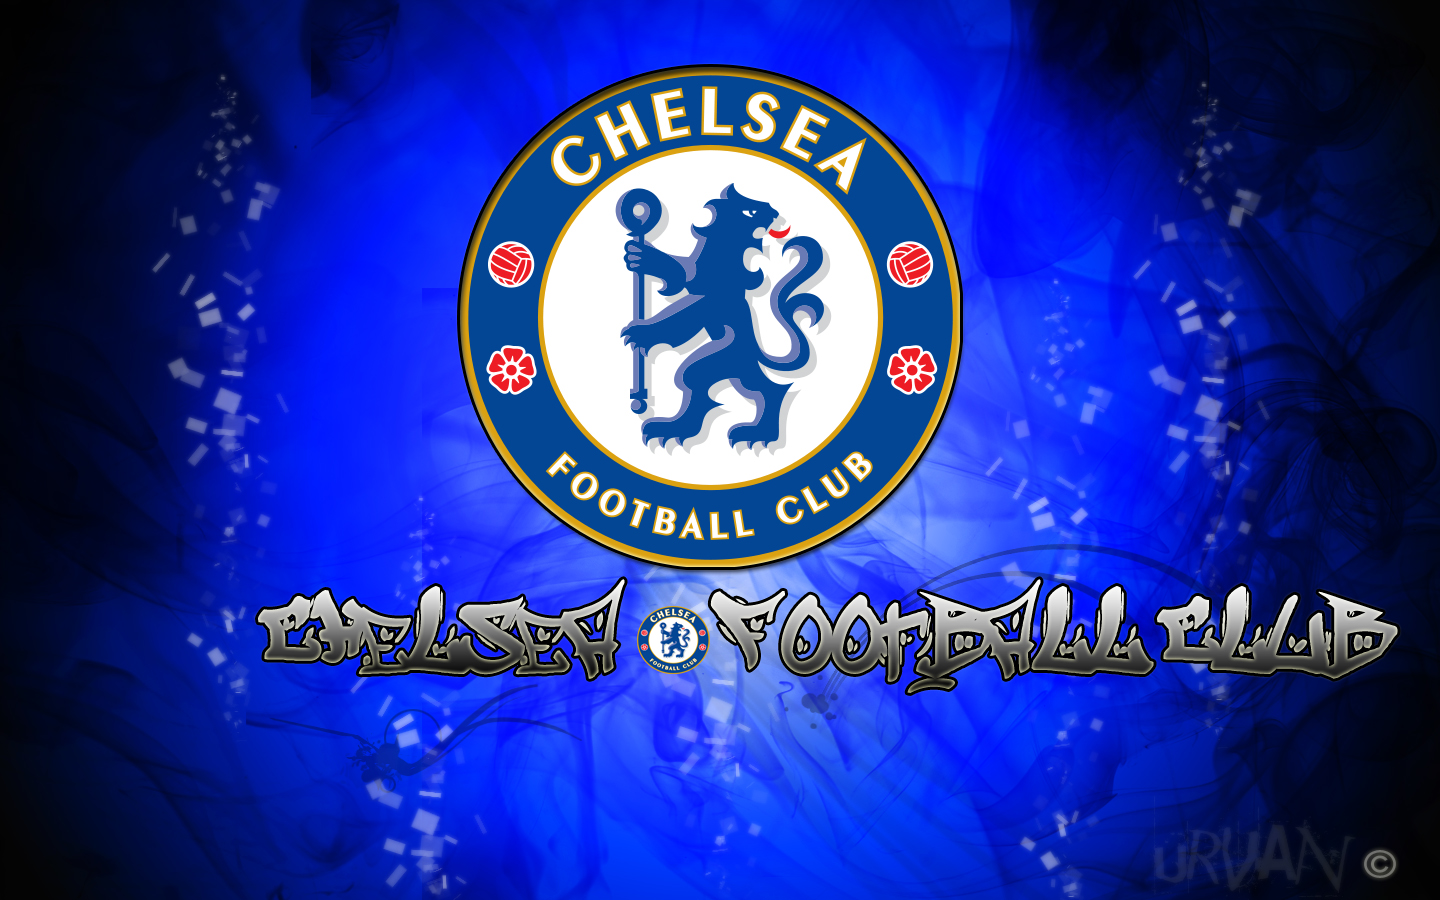 Free Download Chelsea Fc Pictures And Videos Chelsea Fc Logo Hd